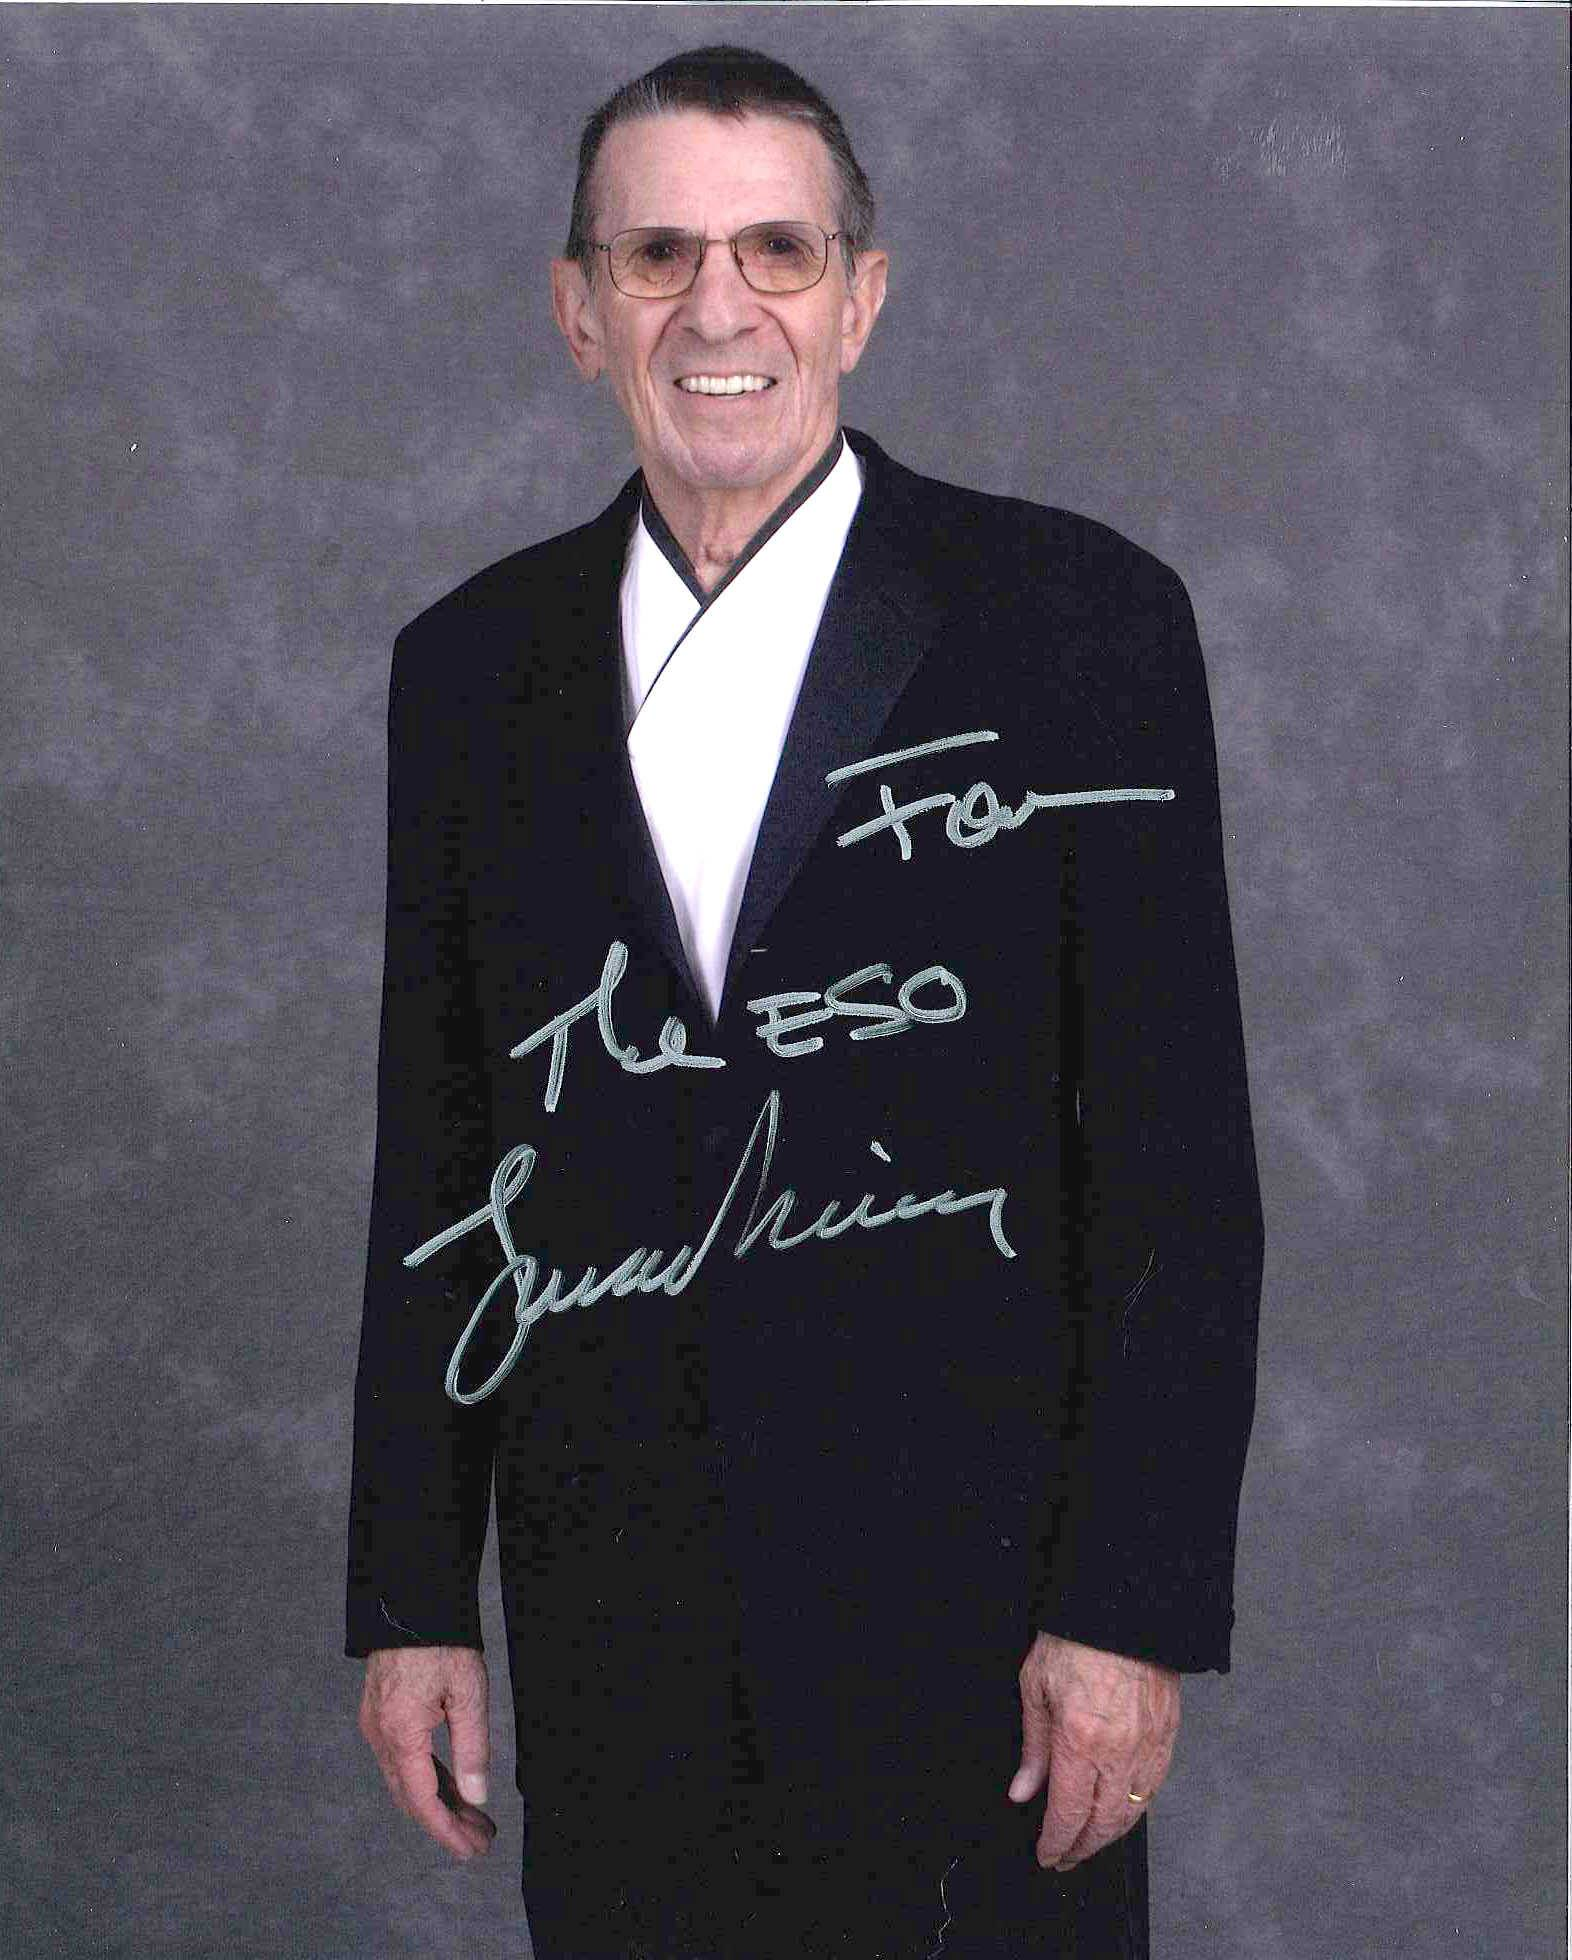 Leonard Nimoy signed a photo and presented it to the Elgin Symphony Orchestra during his performance in 2008.